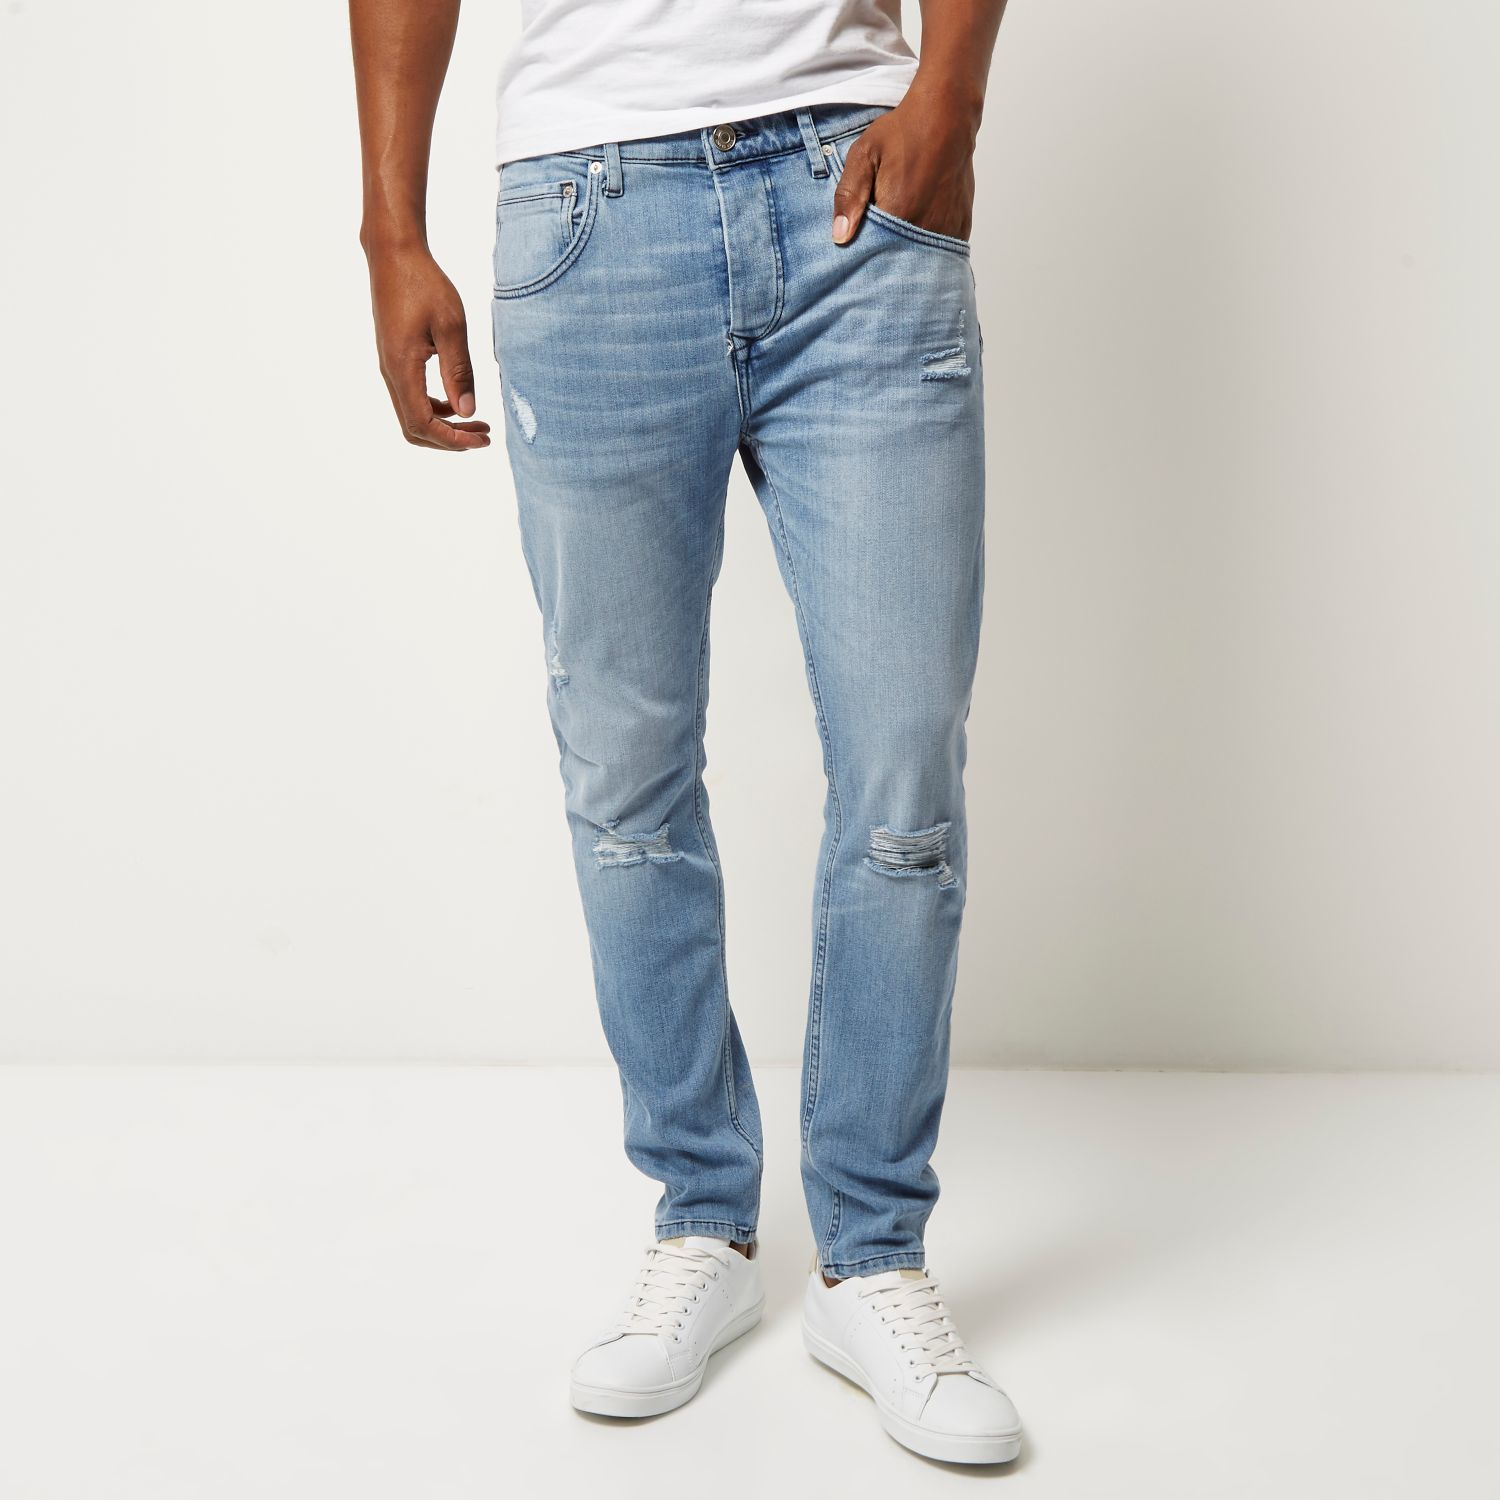 lyst river island light blue wash ripped chester tapered jeans in blue for men. Black Bedroom Furniture Sets. Home Design Ideas